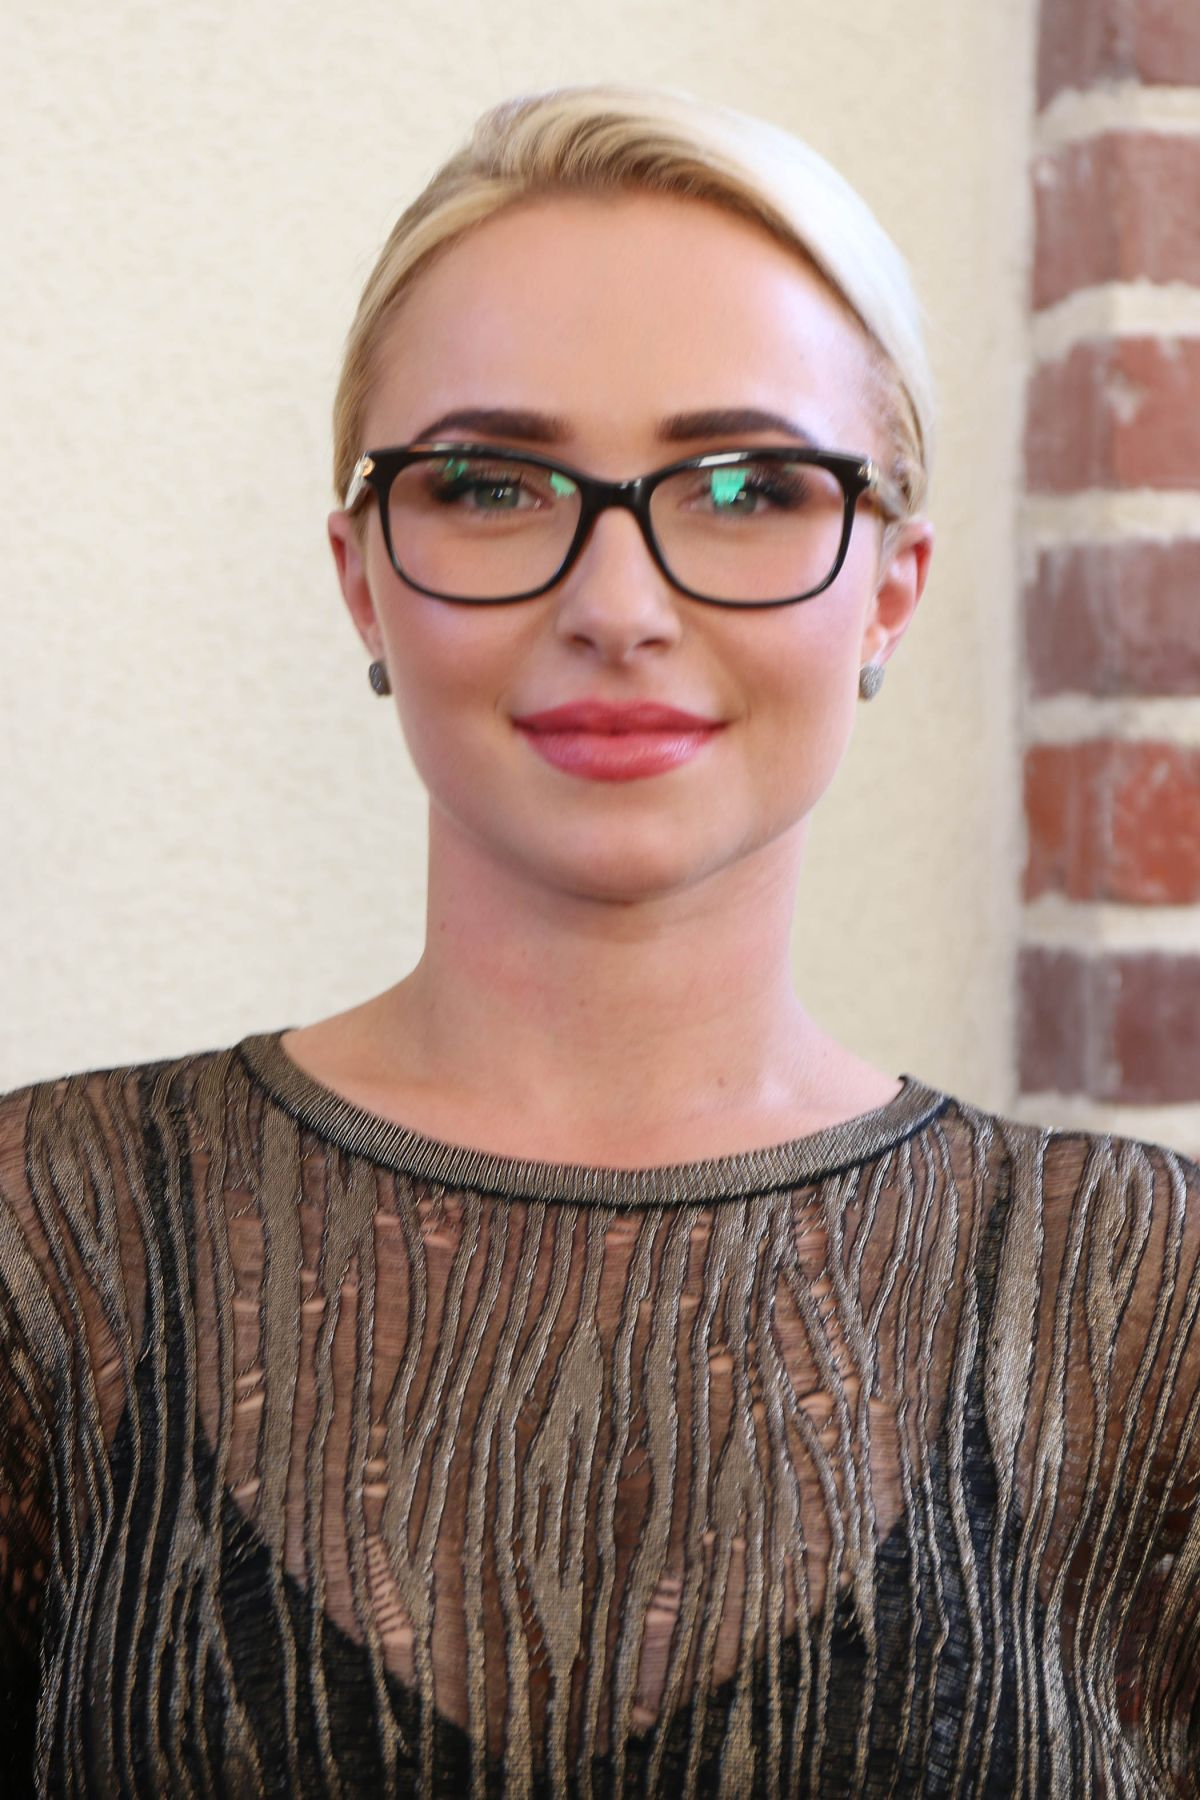 HAYDEN PANETTIERE at Nashville Press Conference in West Hollywood 03/02/2017